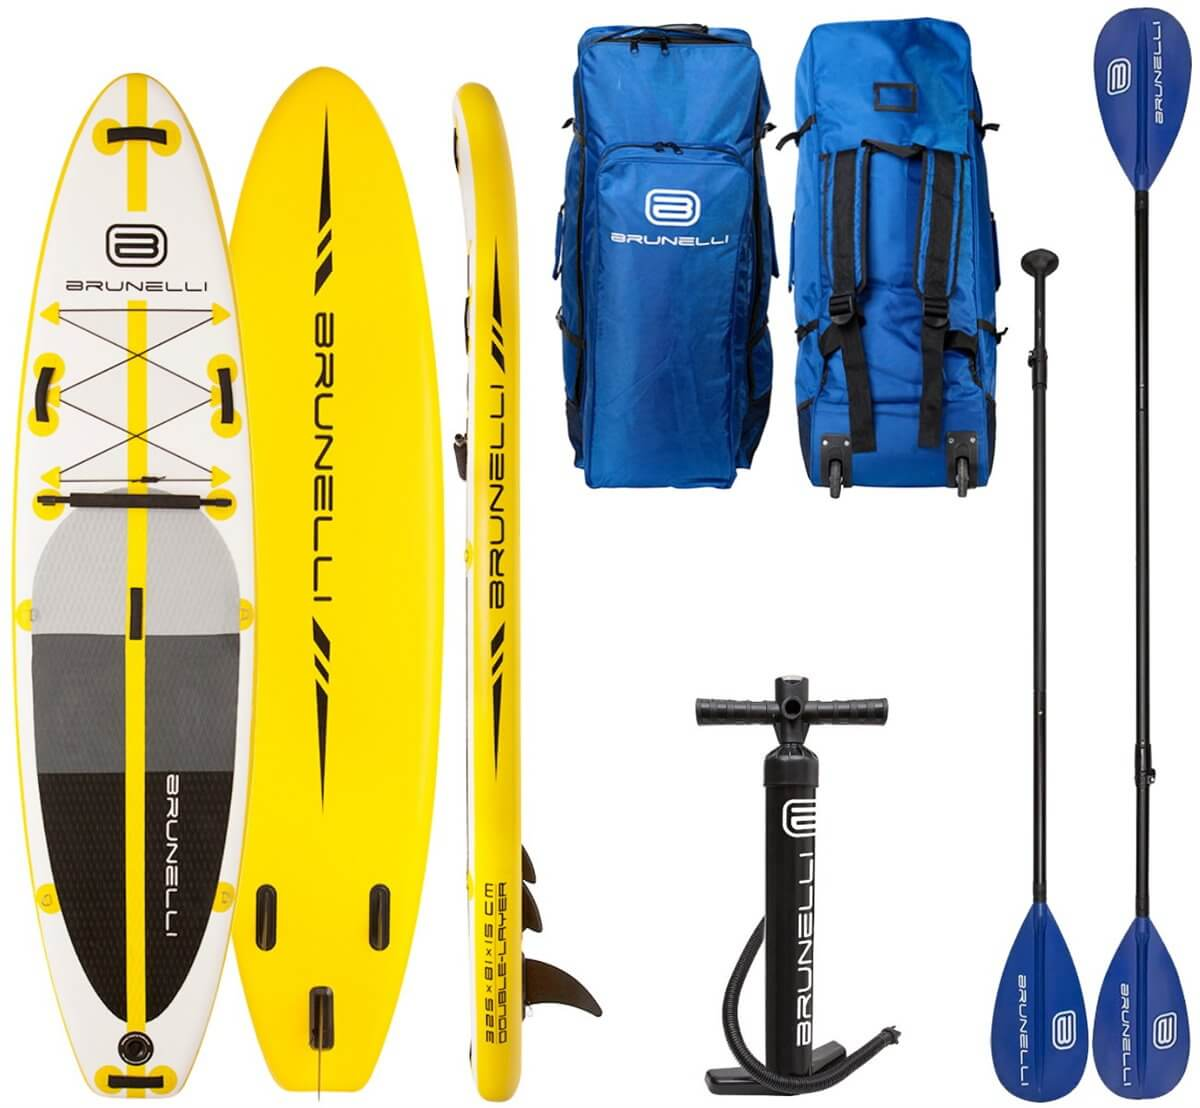 10.8 ISUP BOARD PACKAGE W/PADDLE - YELLOW BRUNELLI 2018